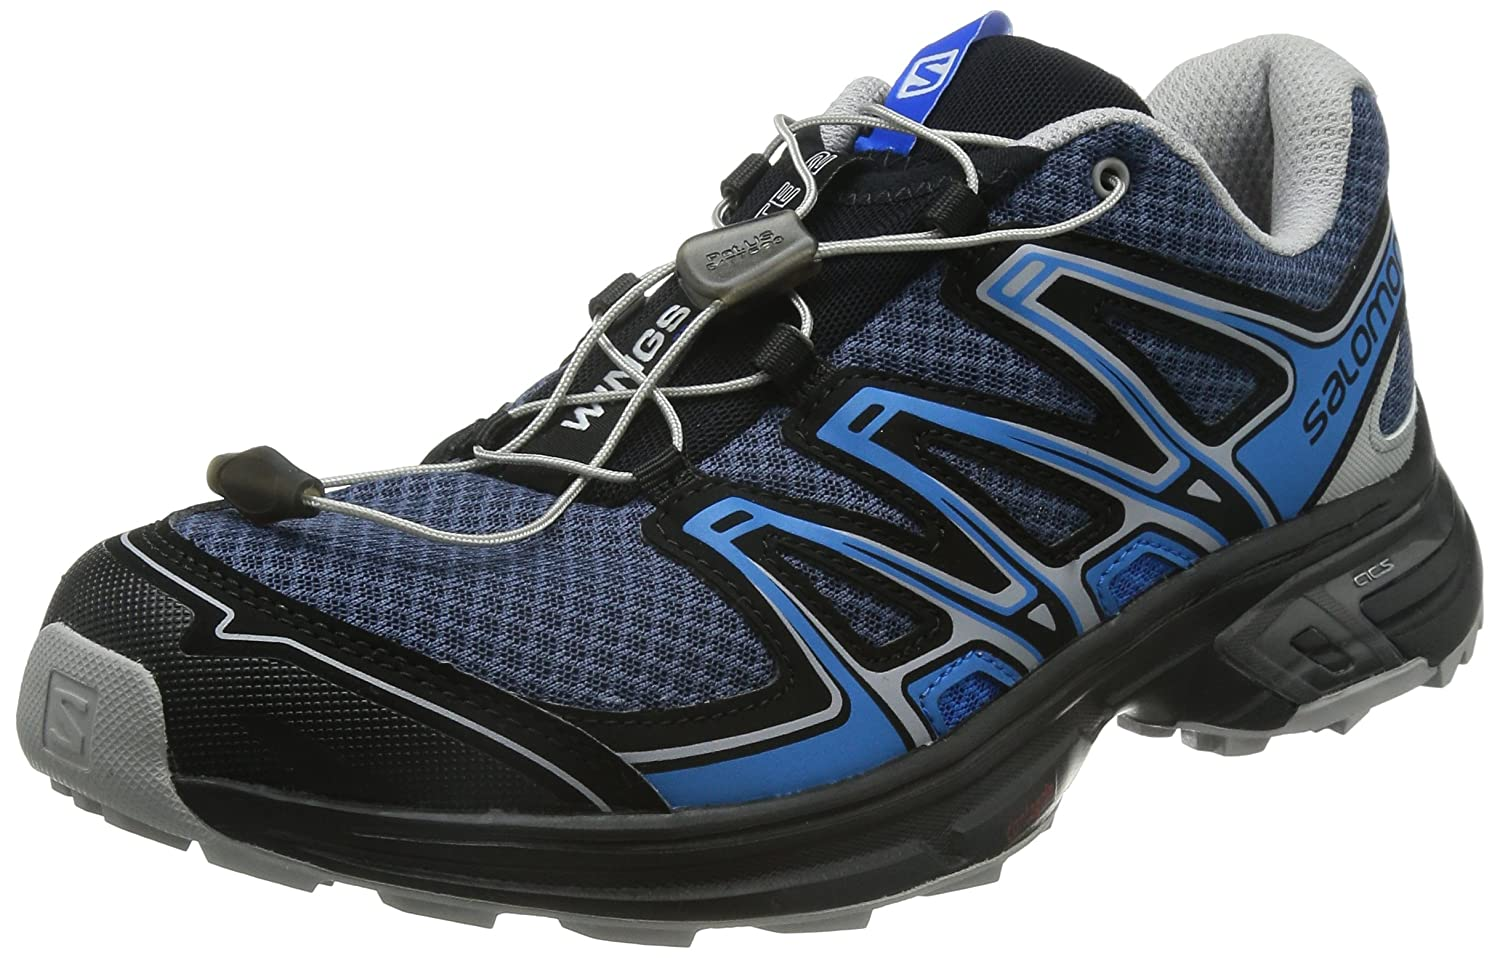 new arrival df9c4 0e173 SALOMON Men s Wings Flyte 2 Trail Running Shoes  Amazon.ca  Shoes   Handbags